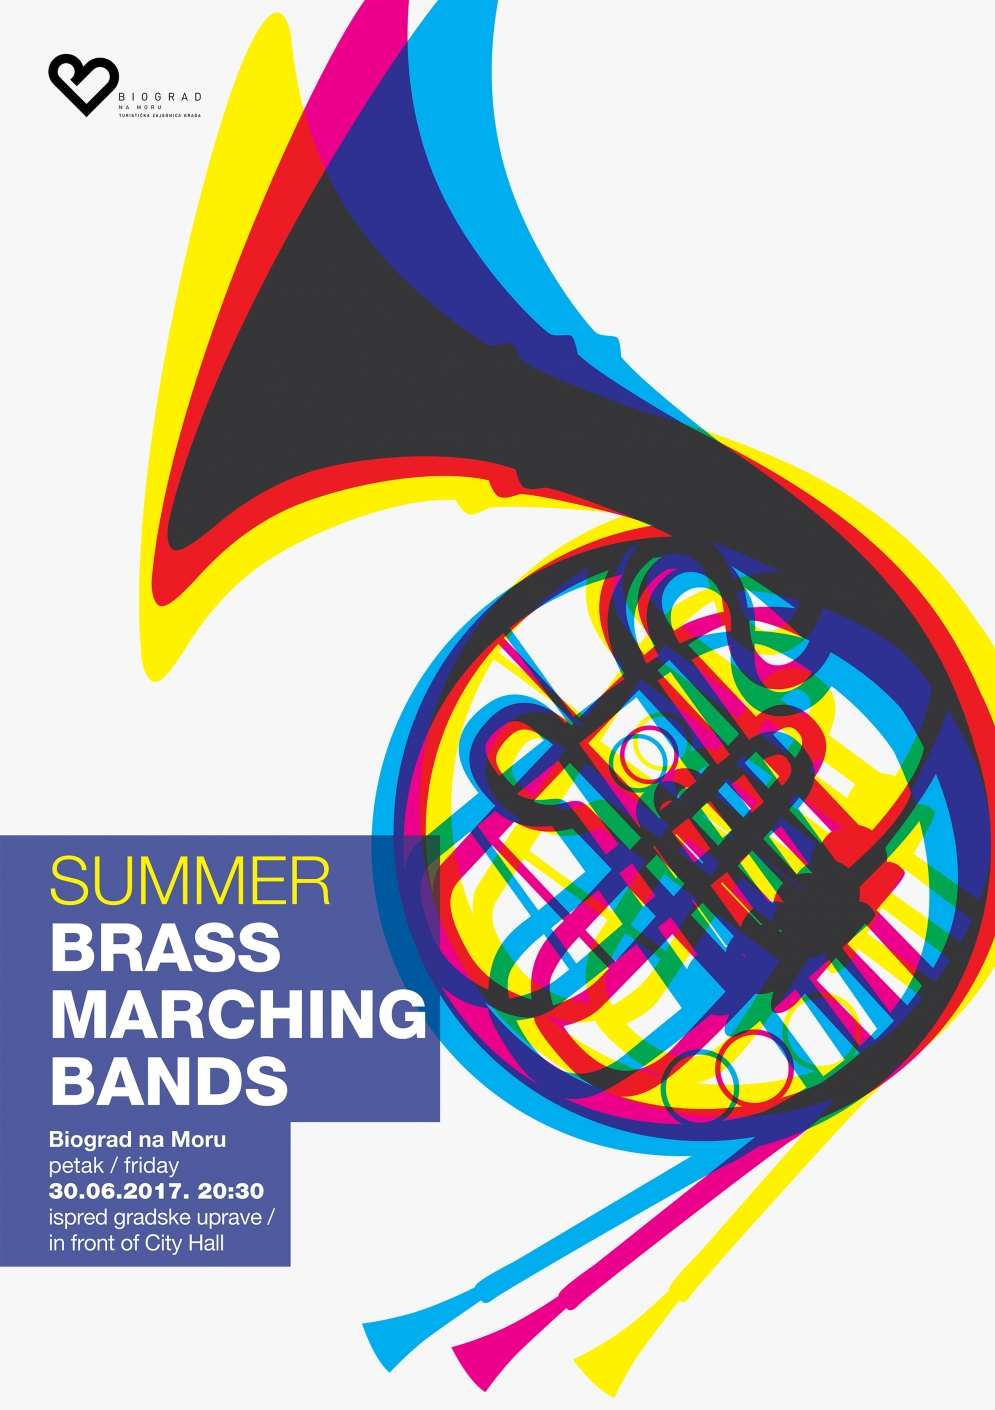 Summer brass marching bands